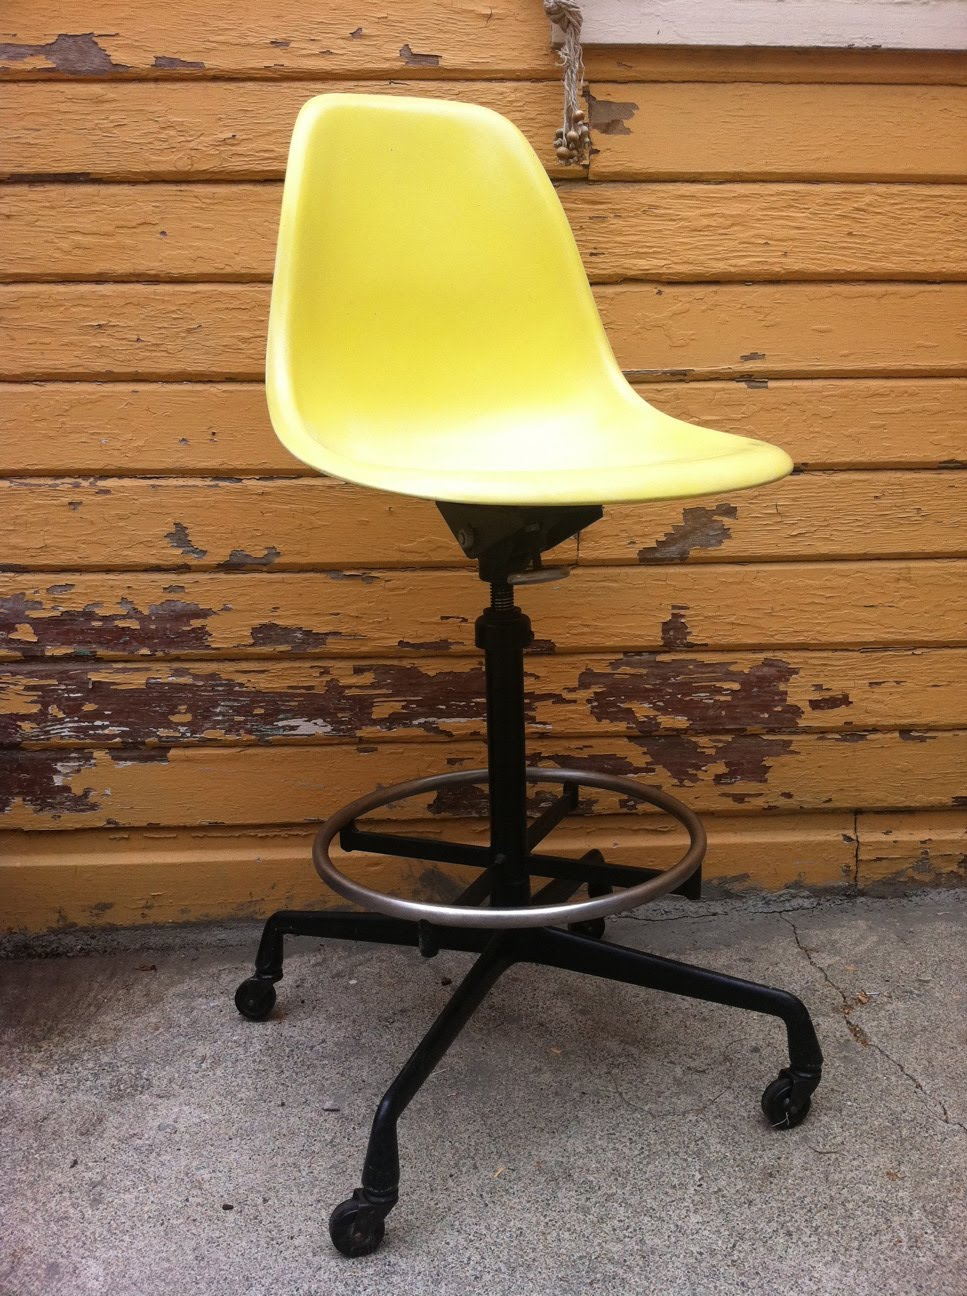 How to Find a Multifunctional Drafting Chair